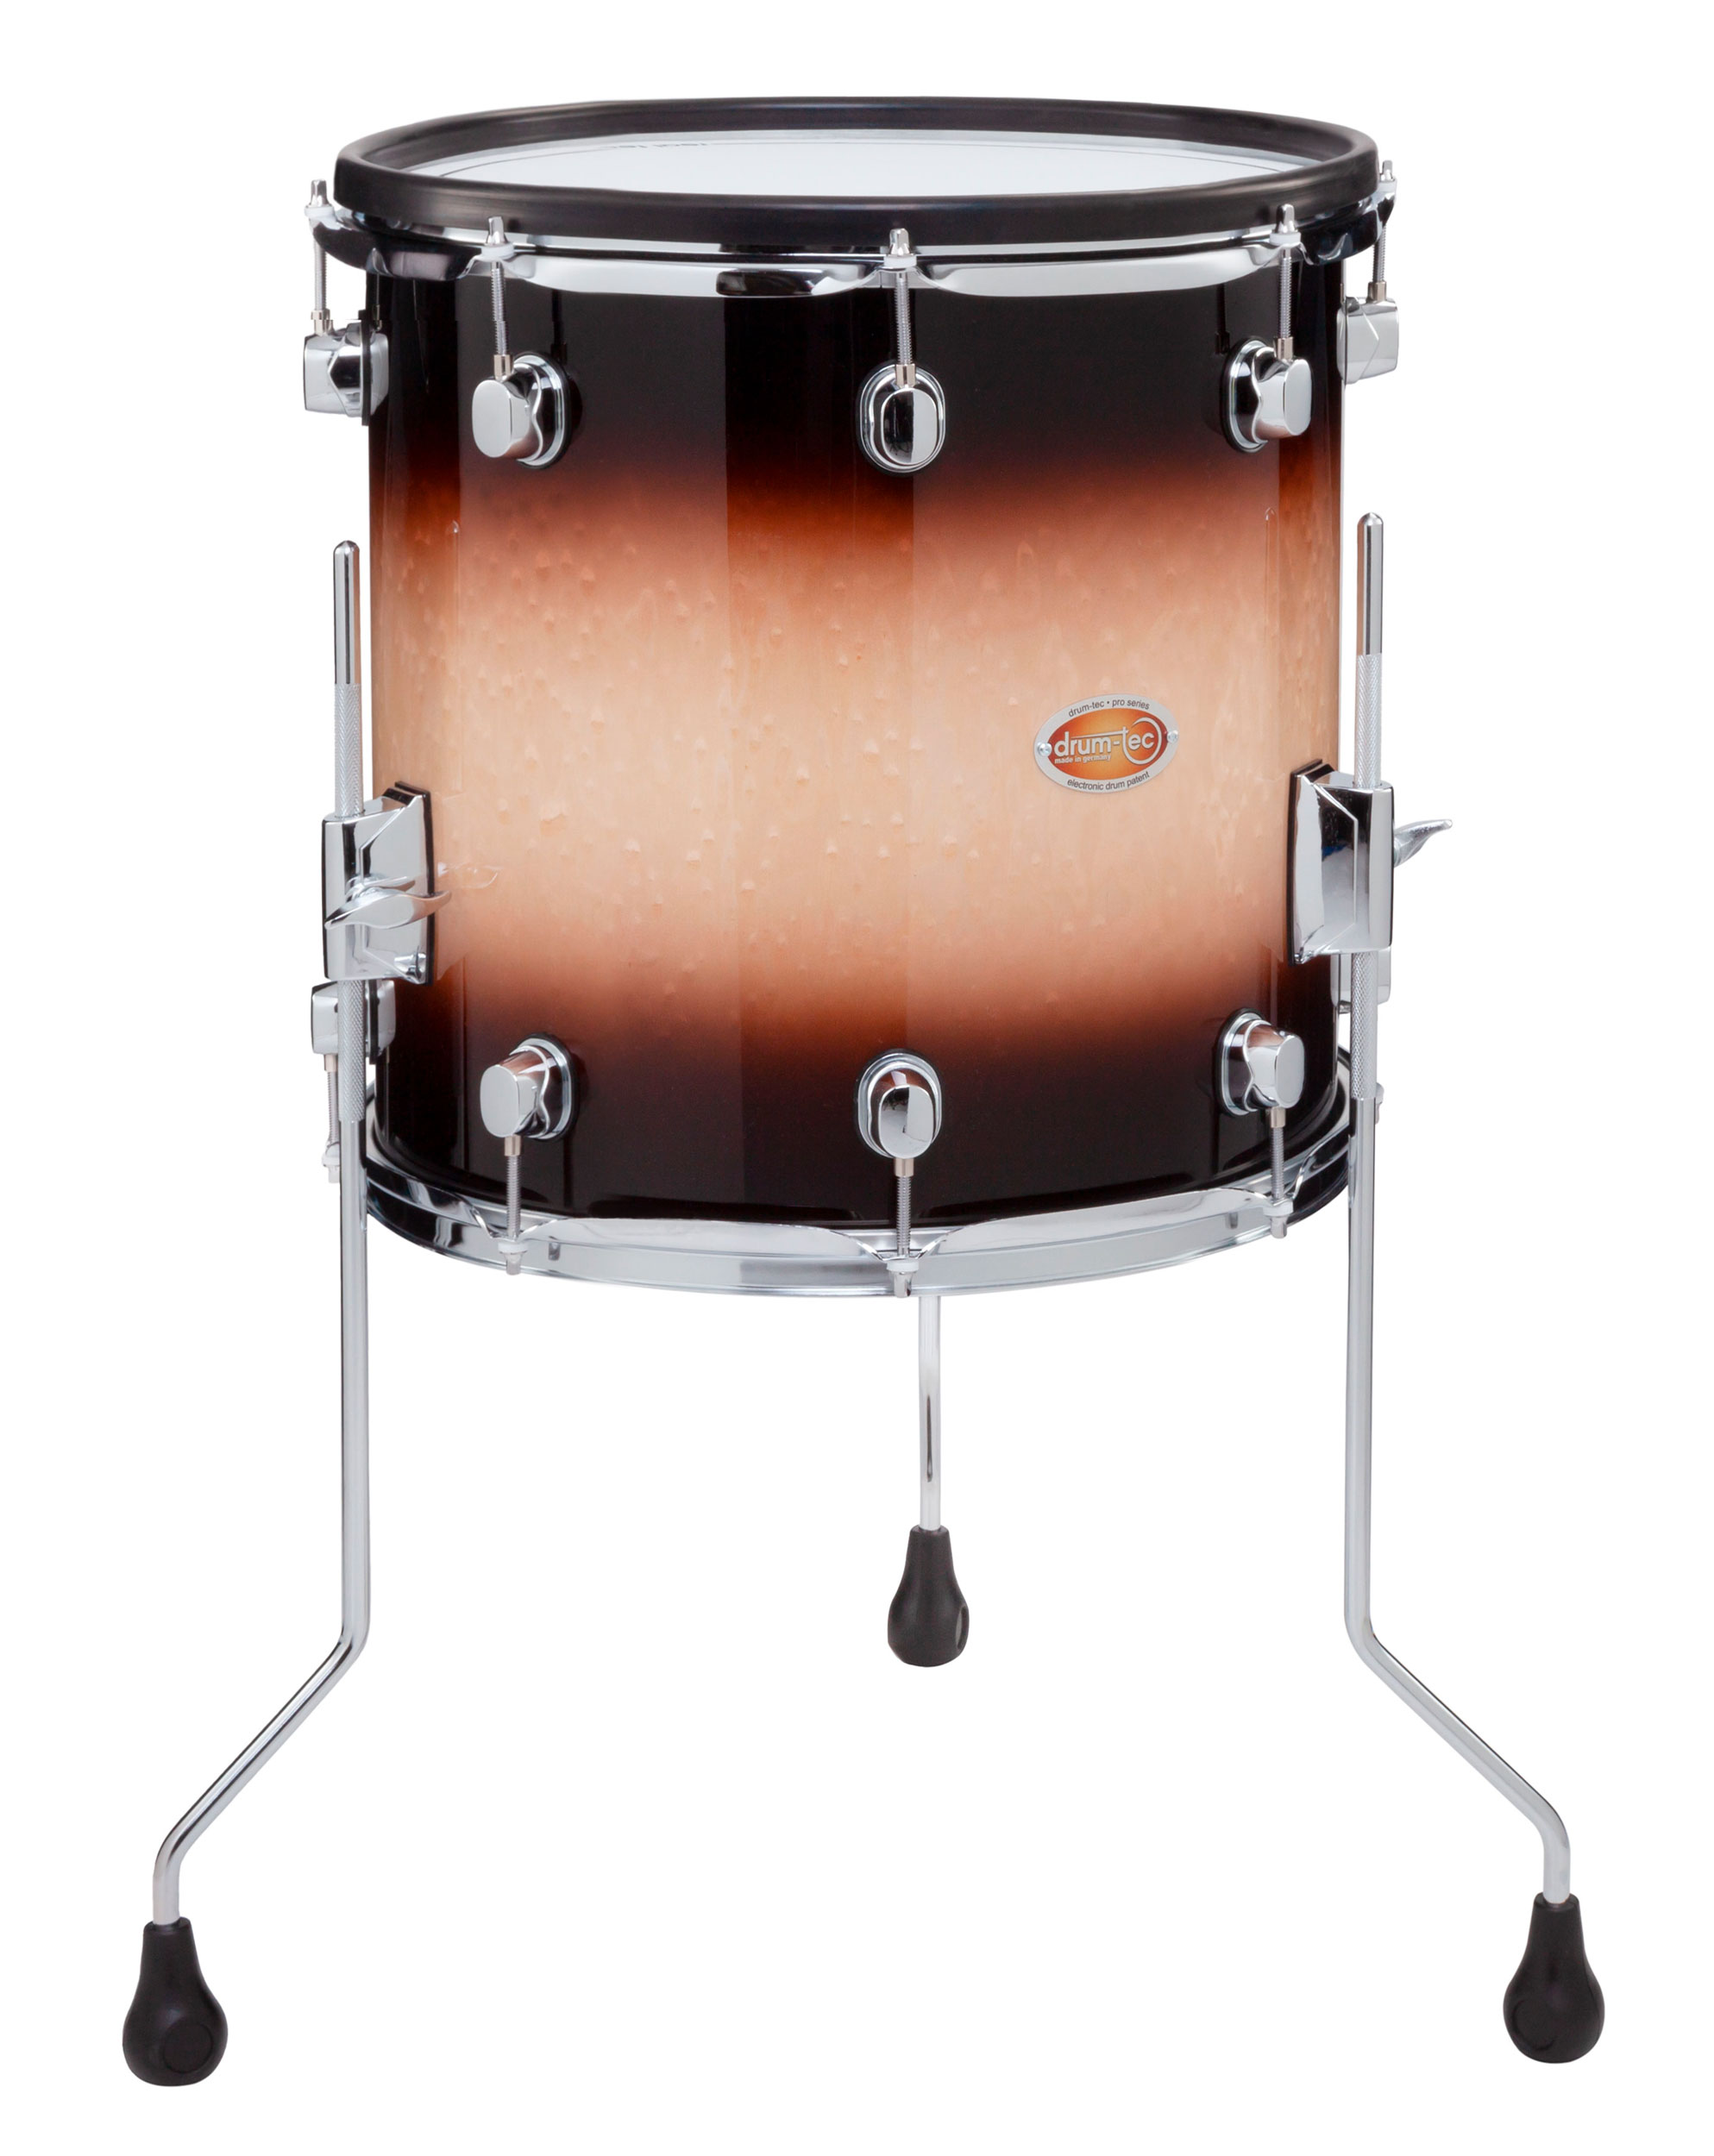 Drum Tec Pro S Floor Tom 14 X 14 Brown Fade Drum Tec